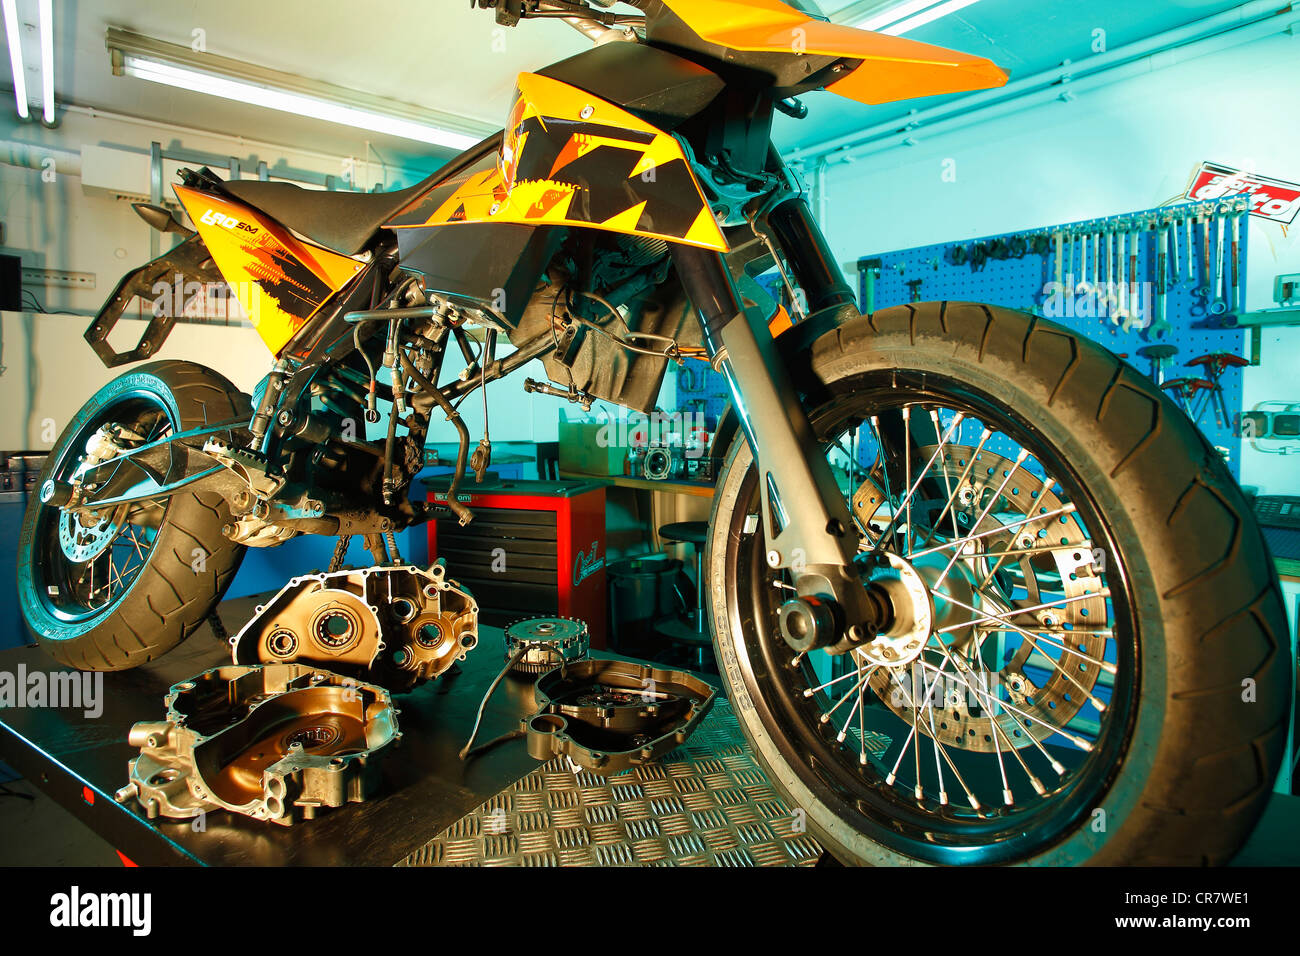 KTM 690 SM in the workshop - Stock Image